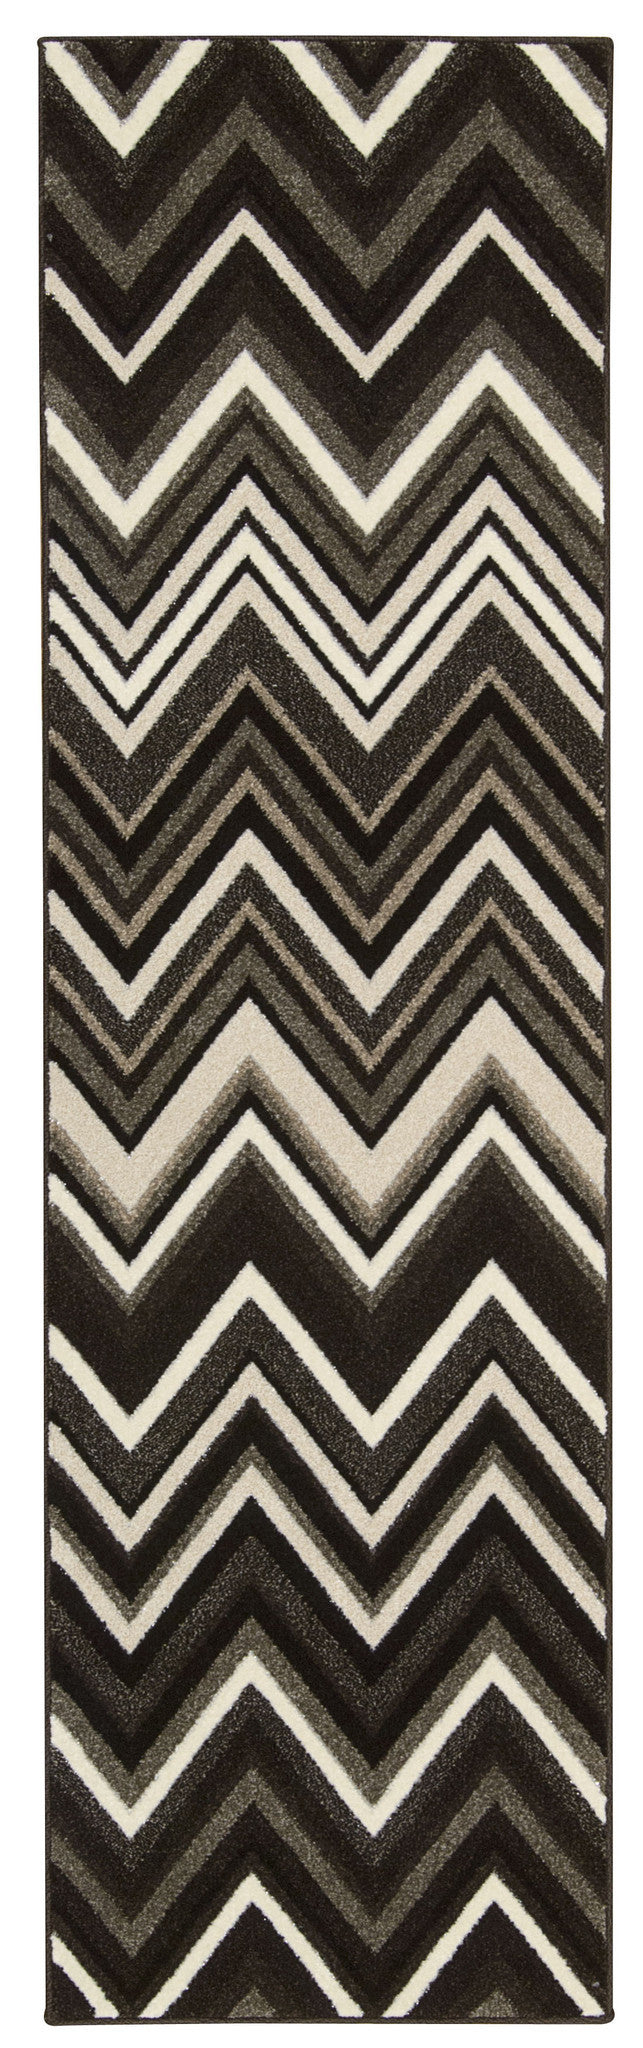 Michael Amini Glistening Nights Grey Area Rug By Nourison MA503 GRY